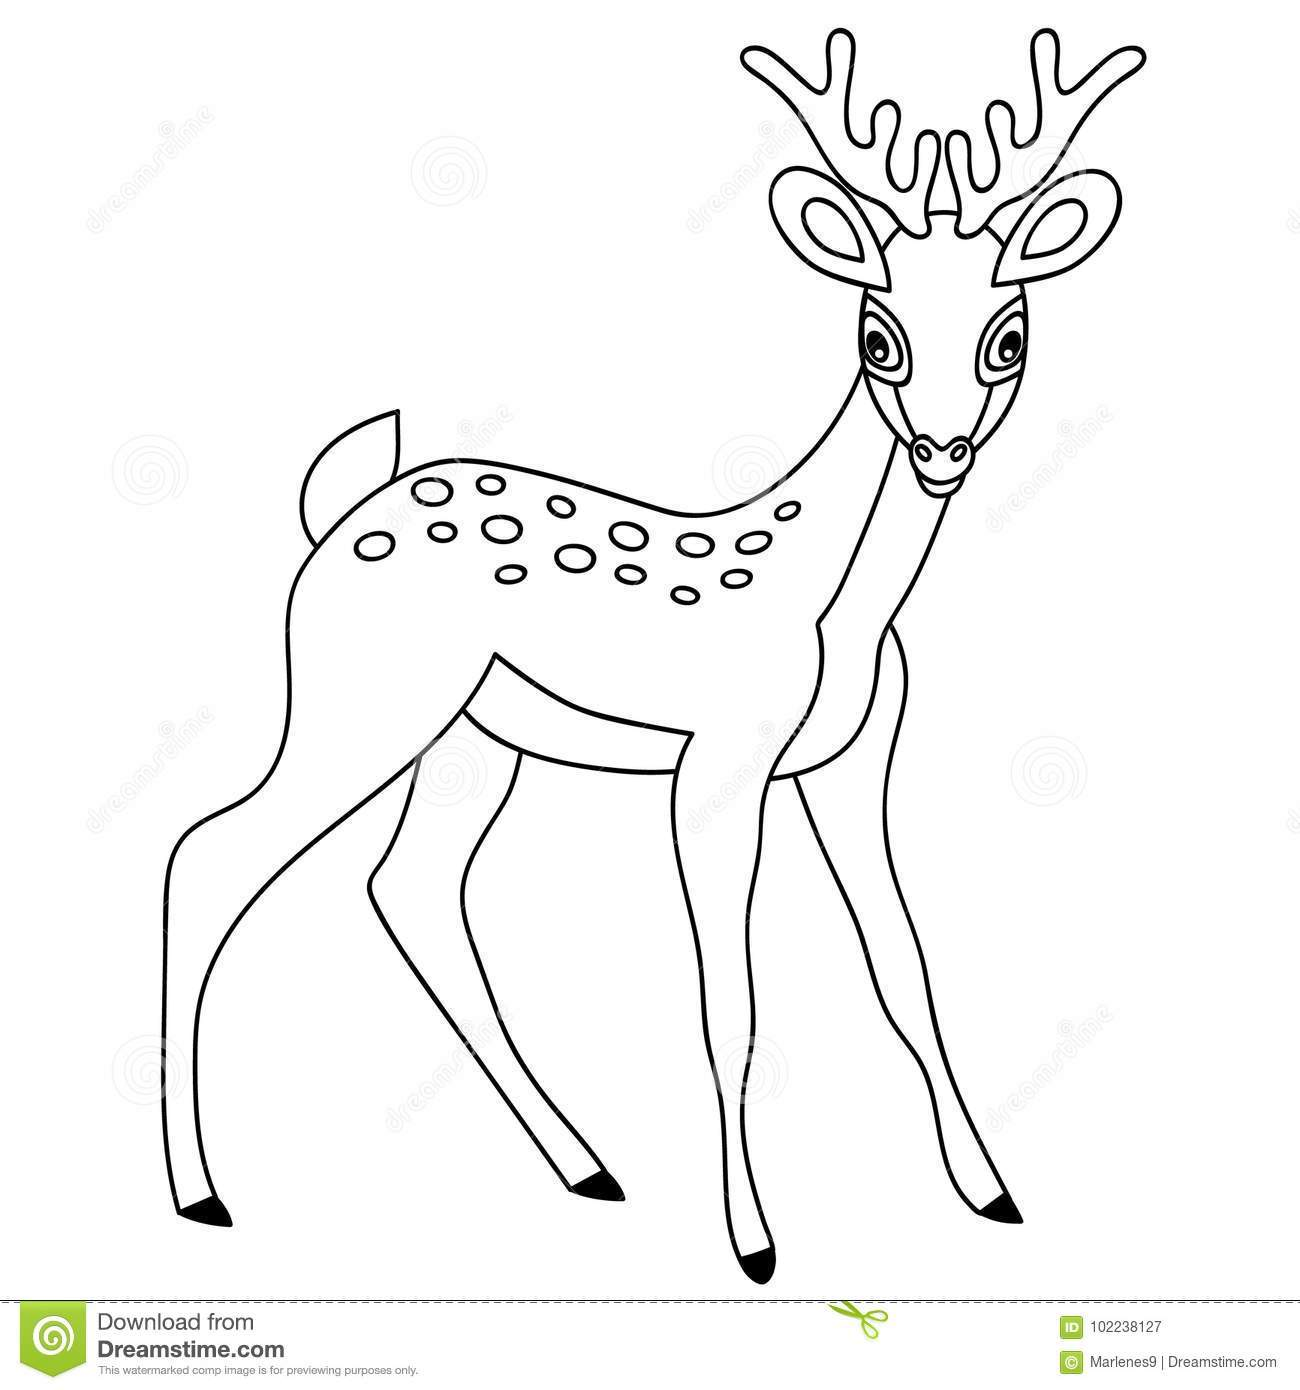 Deer black and white clipart 6 » Clipart Portal.